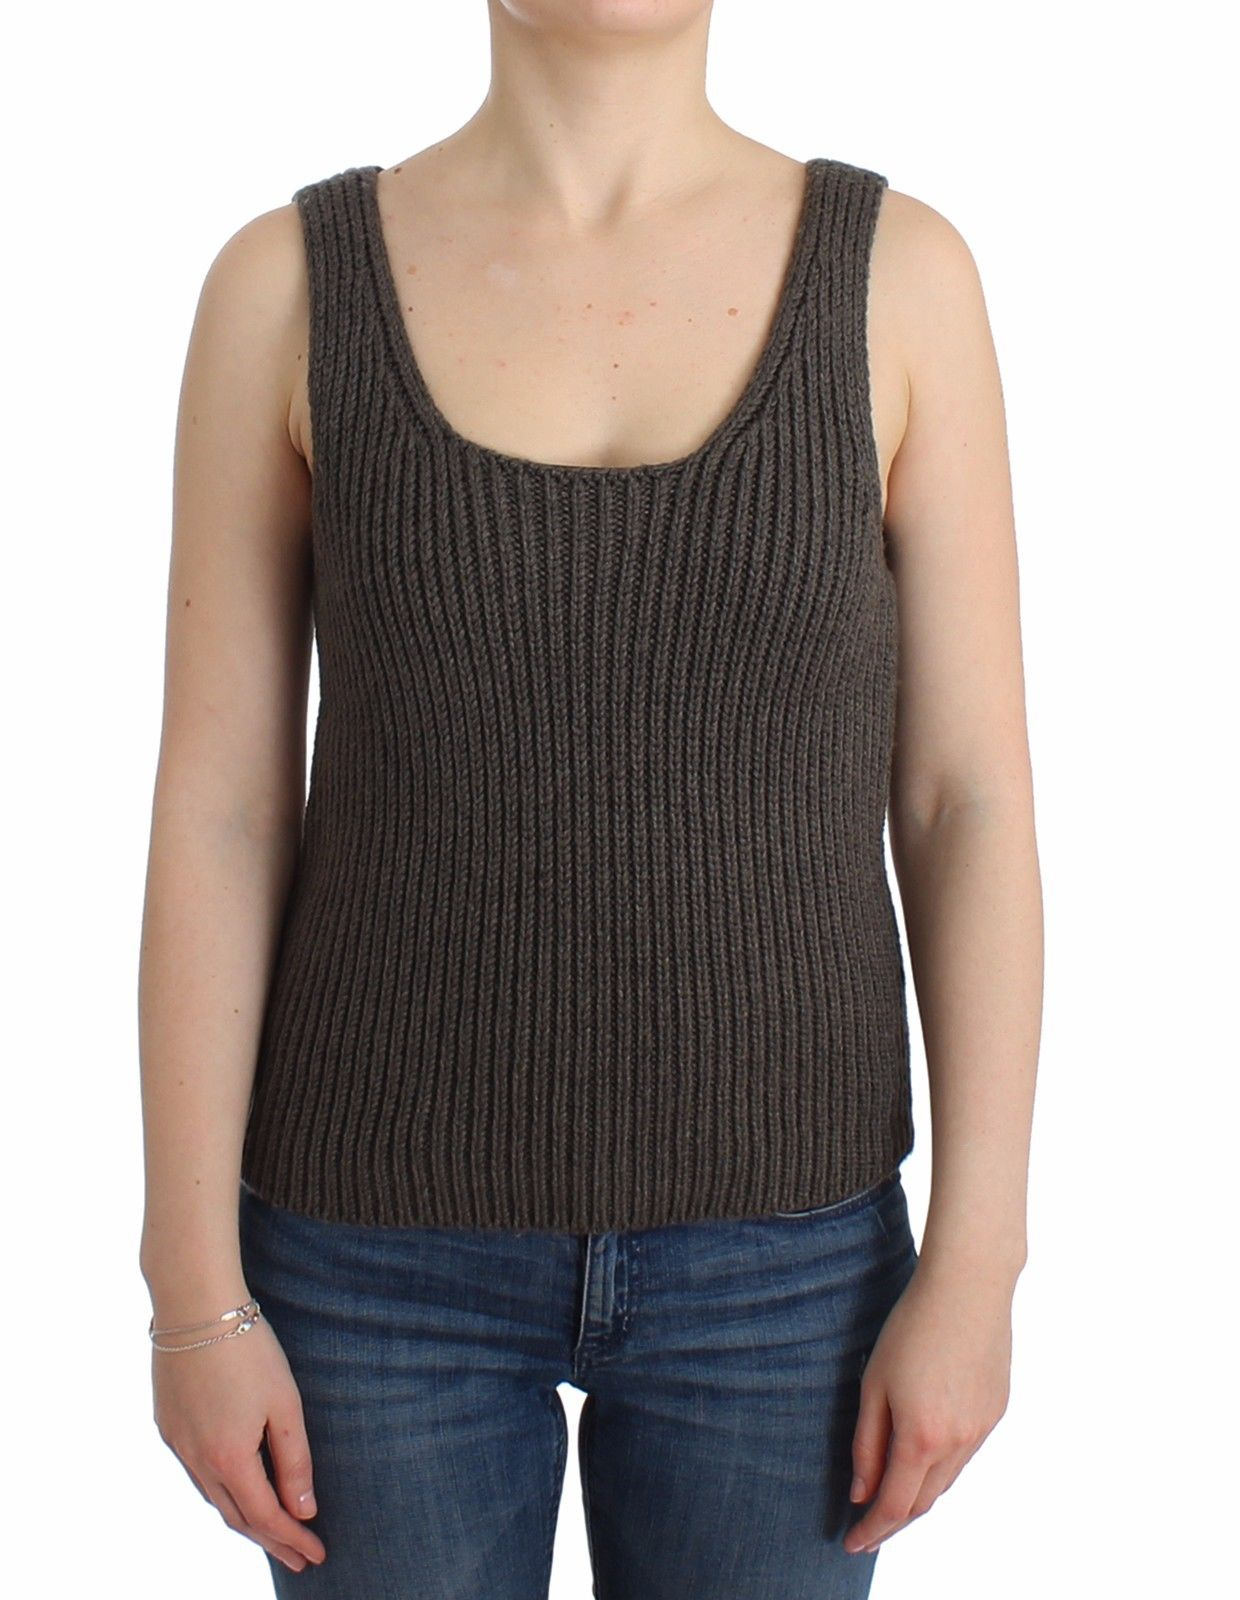 Ermanno Scervino Women's Knitted Sweater Grey SIG11863 - IT40|S